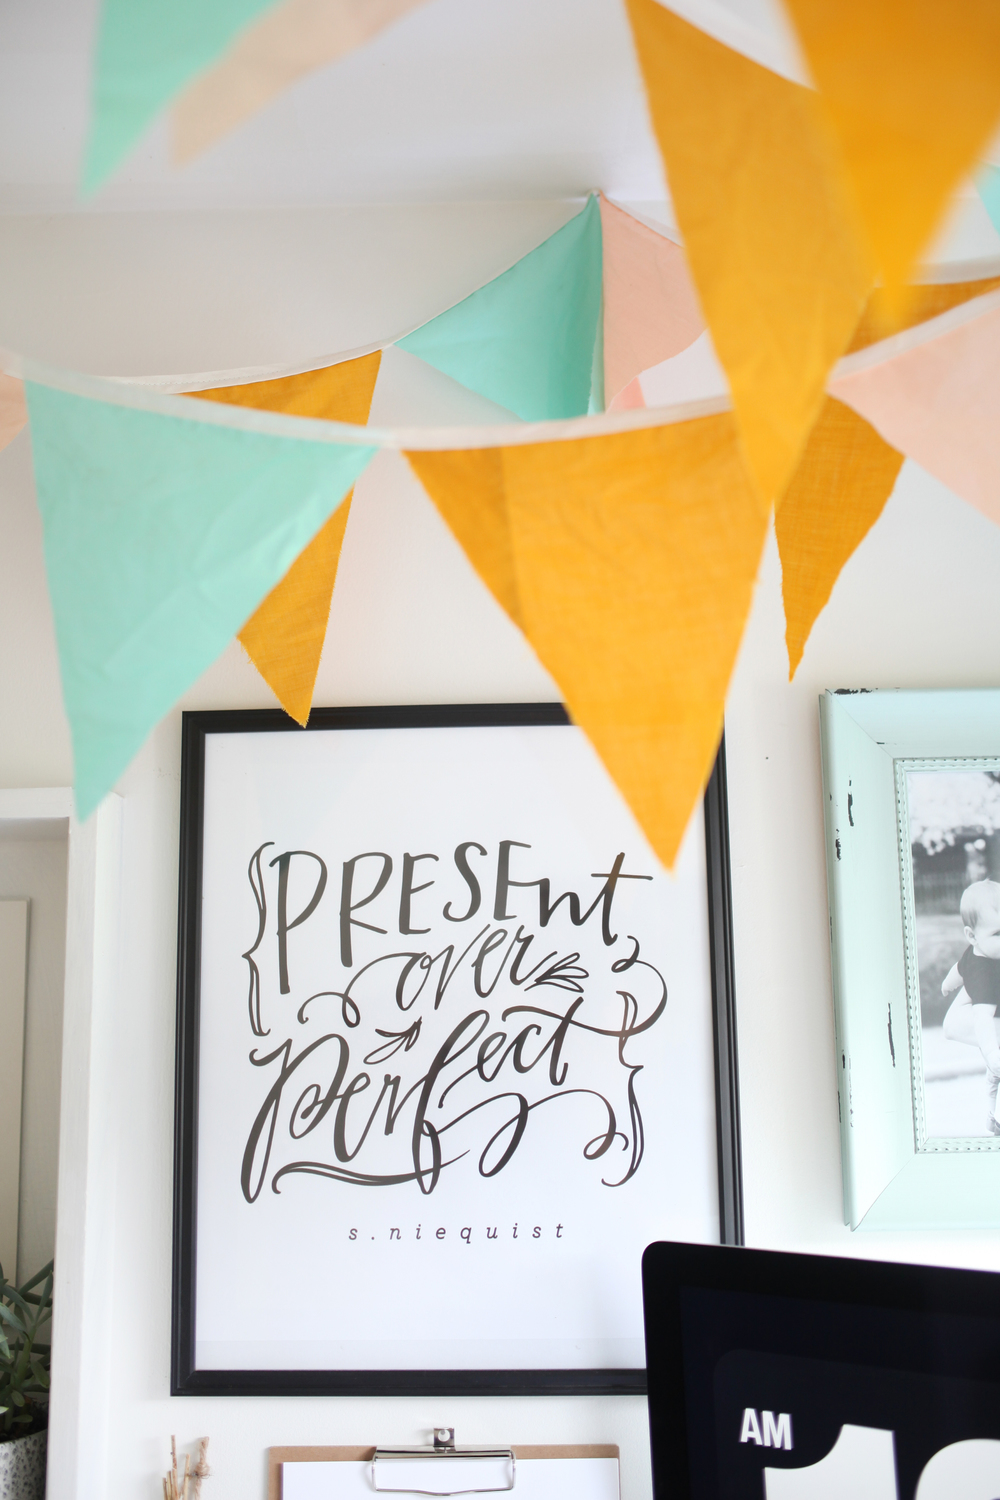 Present over perfect - niequist - quotes - calligraphy - handwriting - inspiration - grace not perfection - home office - wall decor - wall prints - wall inspiration -